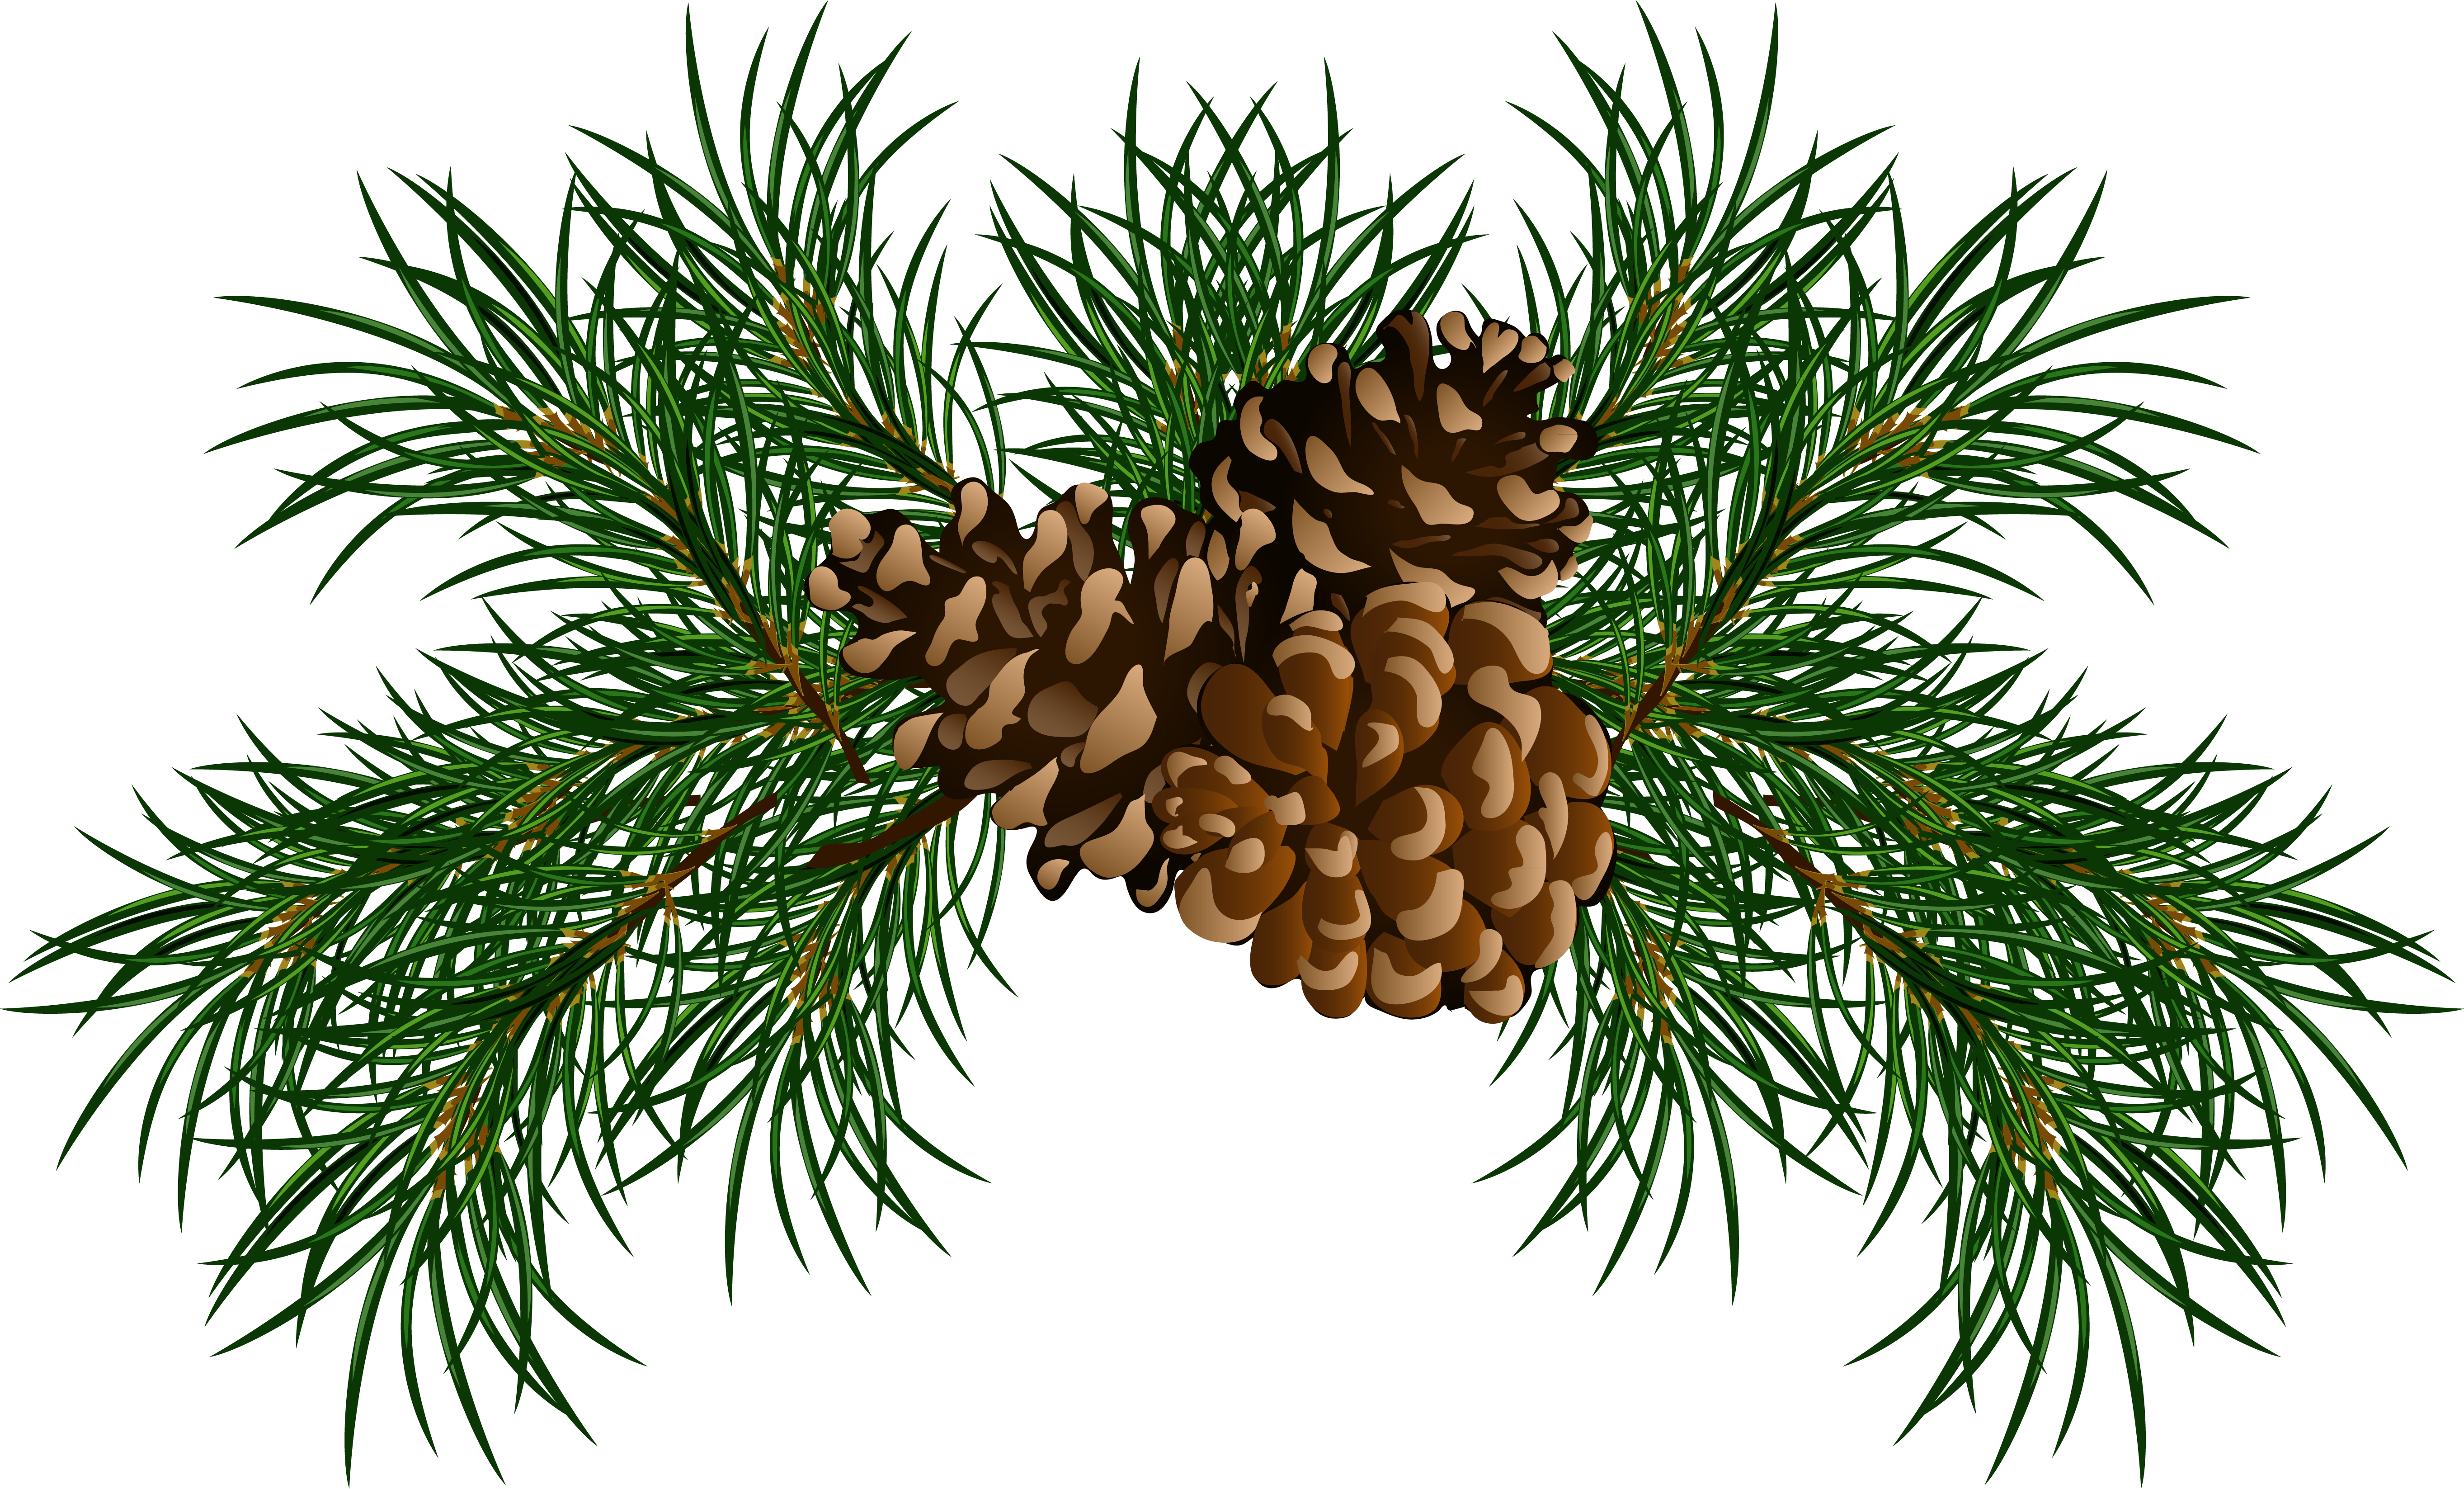 Pine cone branch png. Branches with cones picture